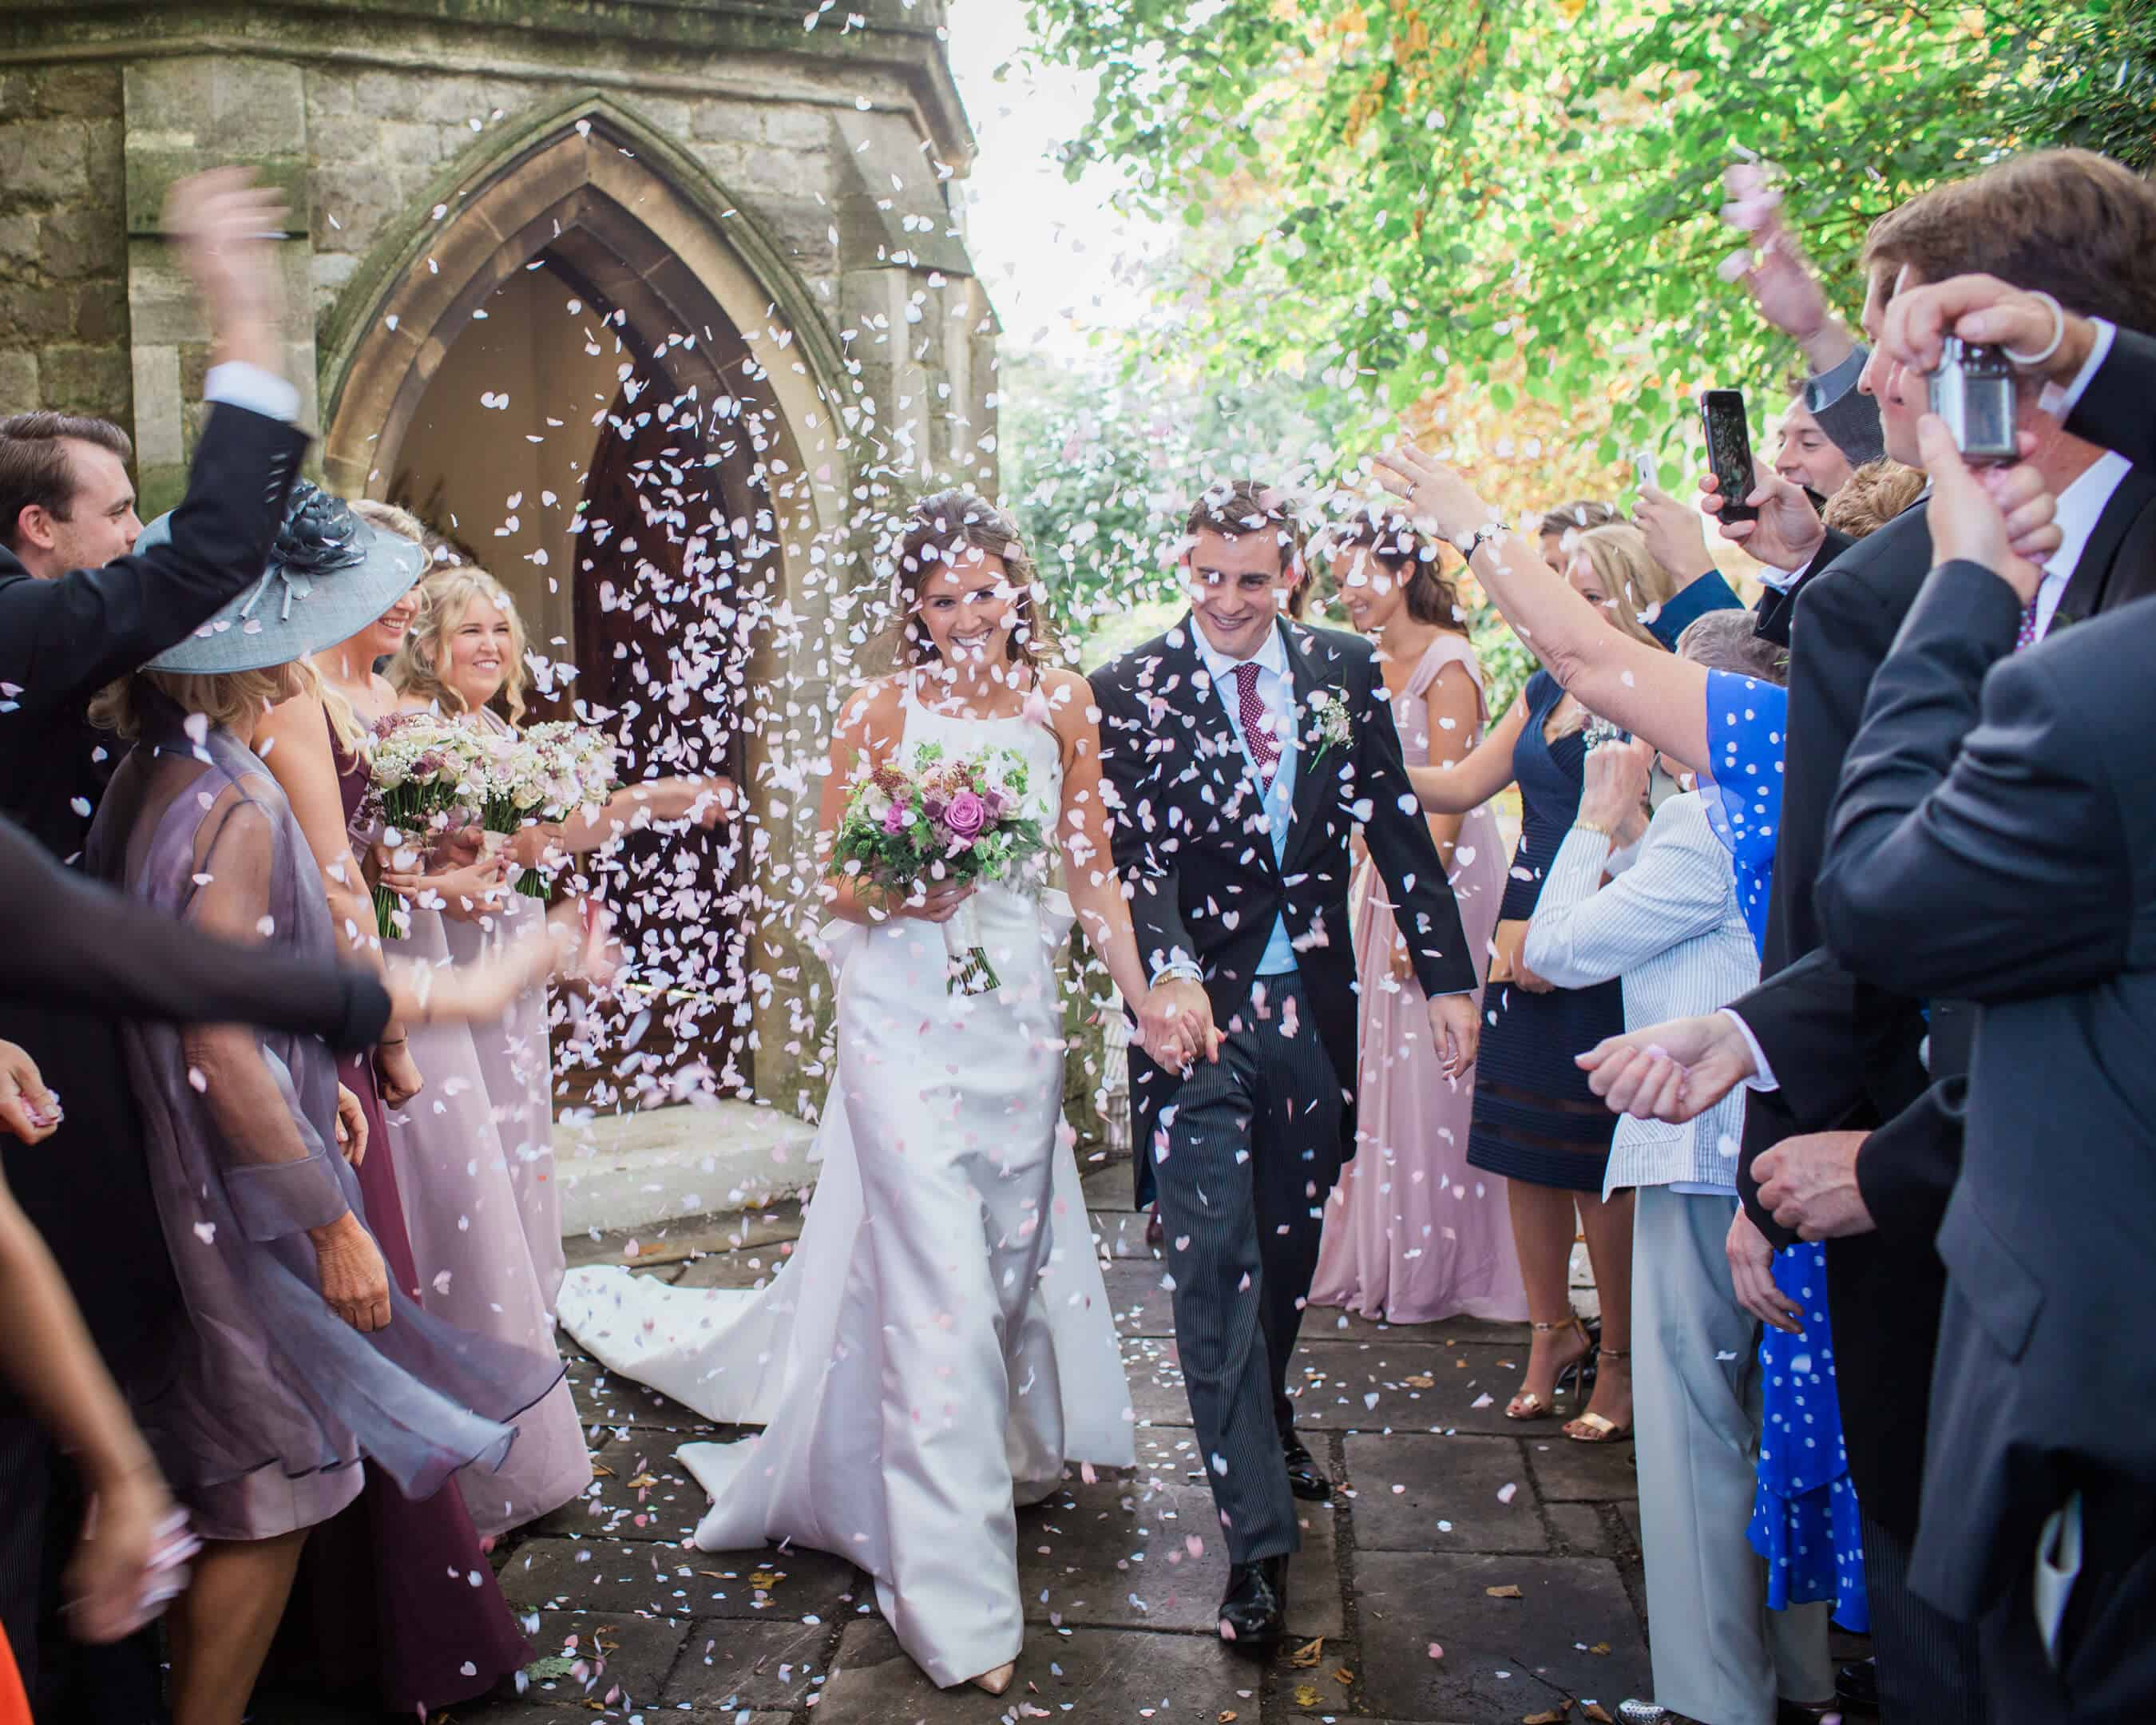 Olivia & James | FULHAM PALACE WEDDING